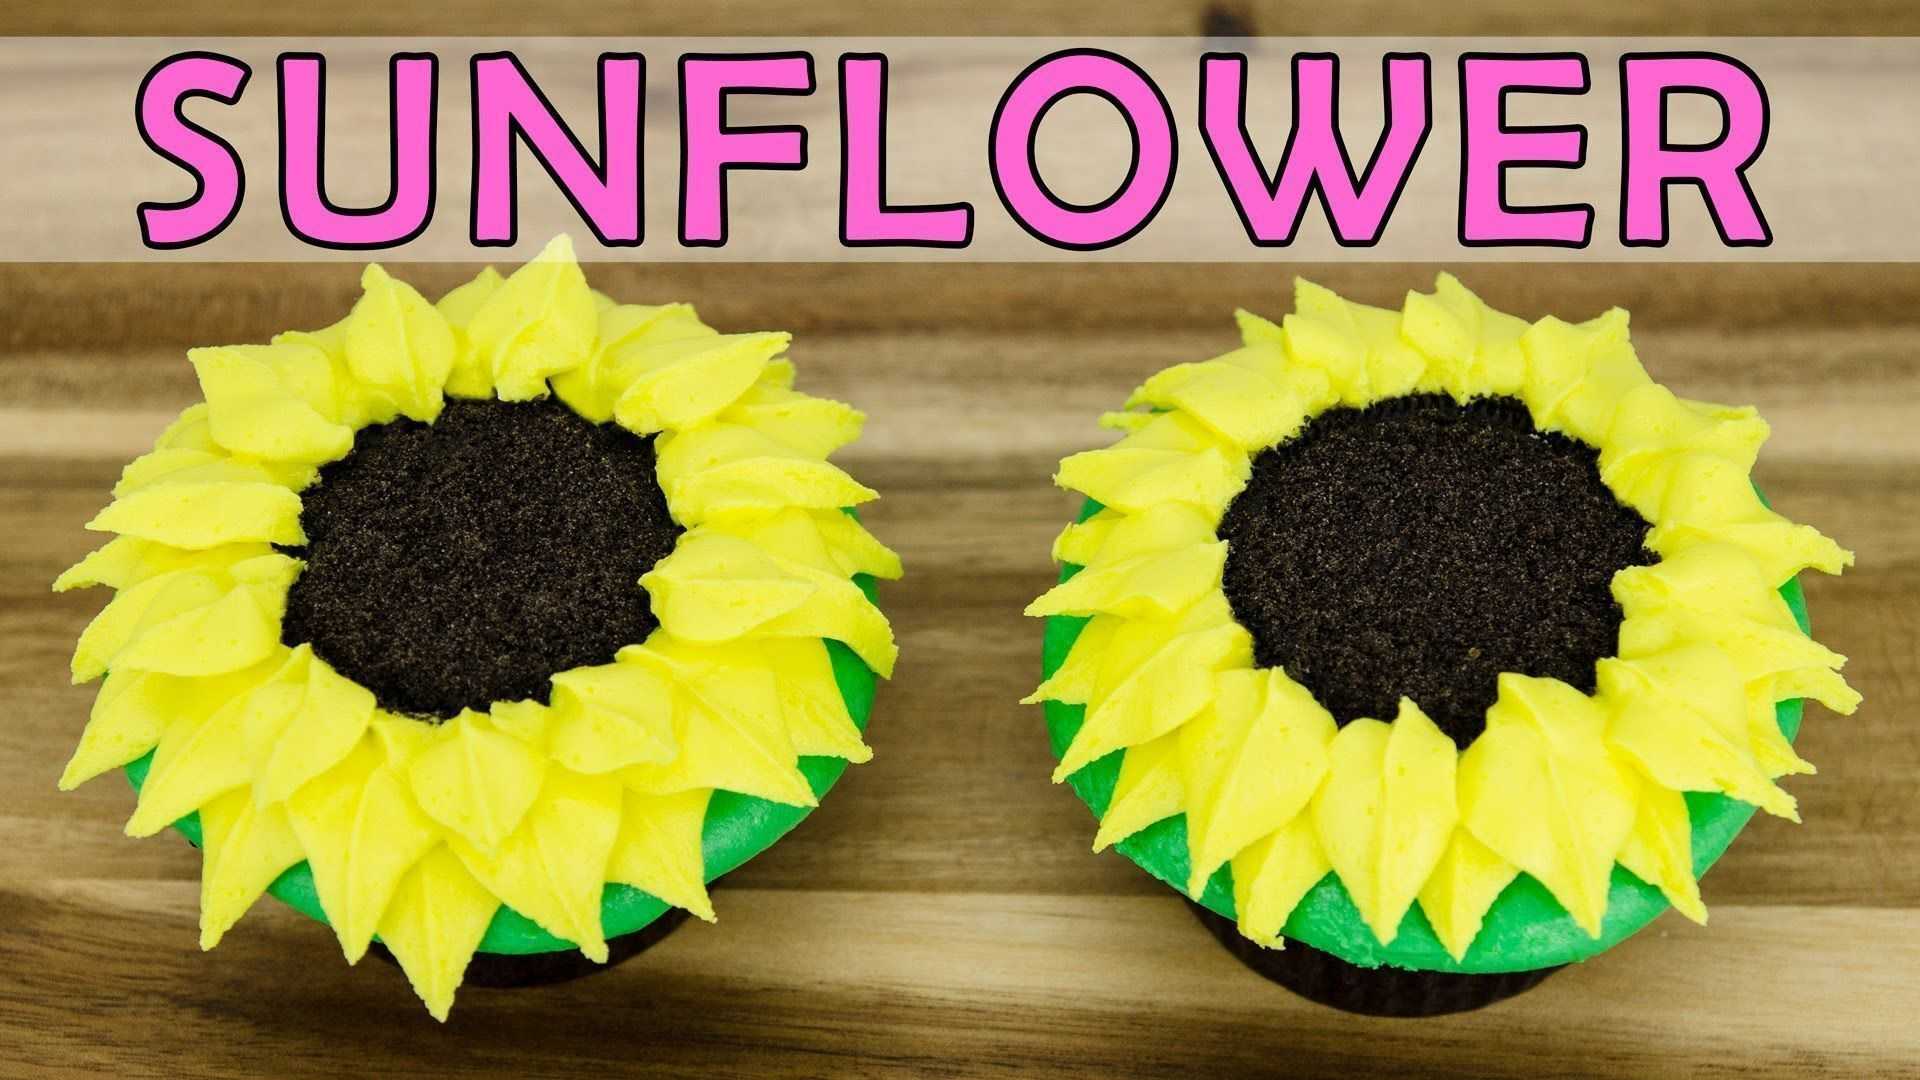 Sunflower Cupcakes: How to Make by Cookies Cupcakes and Cardio #sunflowercupcakes Sunflower Cupcakes: How to Make by Cookies Cupcakes and Cardio #sunflowercupcakes Sunflower Cupcakes: How to Make by Cookies Cupcakes and Cardio #sunflowercupcakes Sunflower Cupcakes: How to Make by Cookies Cupcakes and Cardio #sunflowercupcakes Sunflower Cupcakes: How to Make by Cookies Cupcakes and Cardio #sunflowercupcakes Sunflower Cupcakes: How to Make by Cookies Cupcakes and Cardio #sunflowercupcakes Sunflowe #sunflowercupcakes